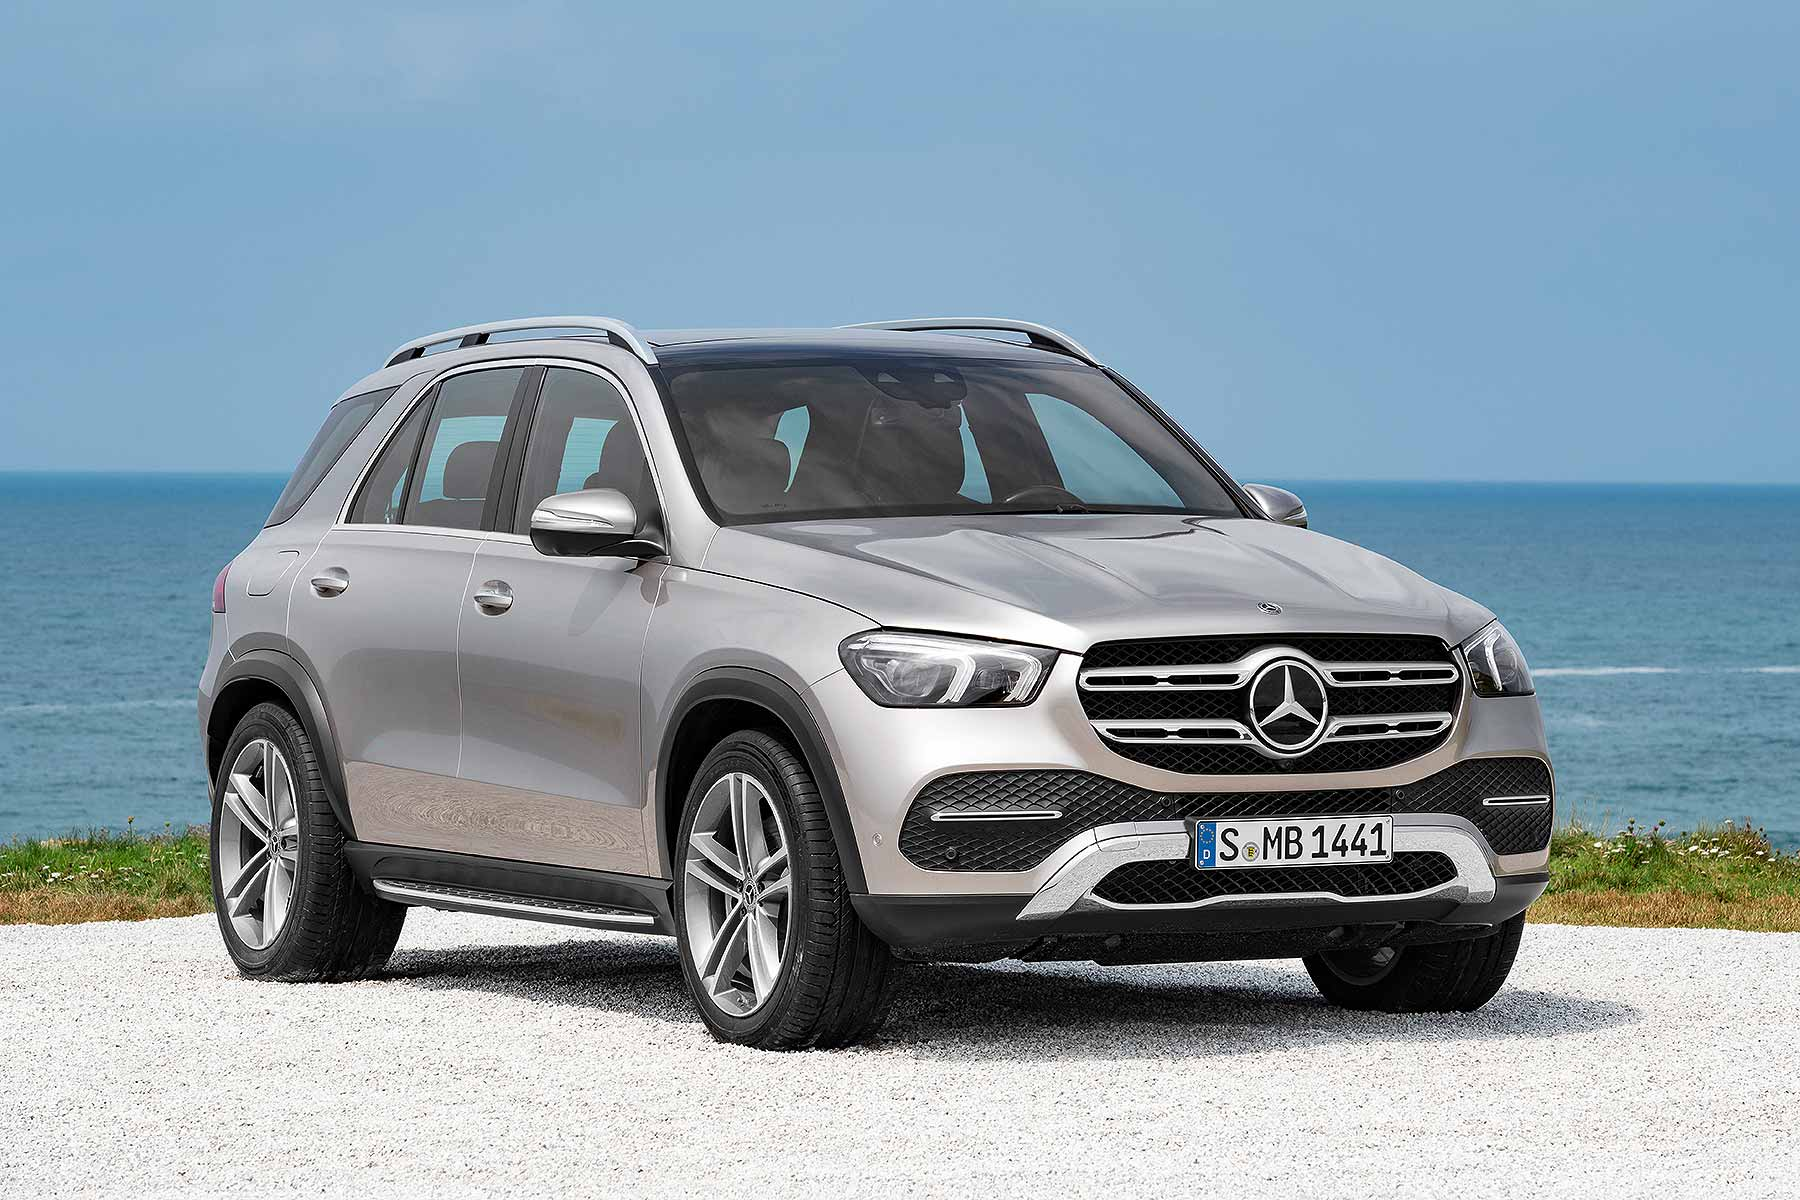 The 2019 Mercedes-Benz GLE – Going from strength to strength!